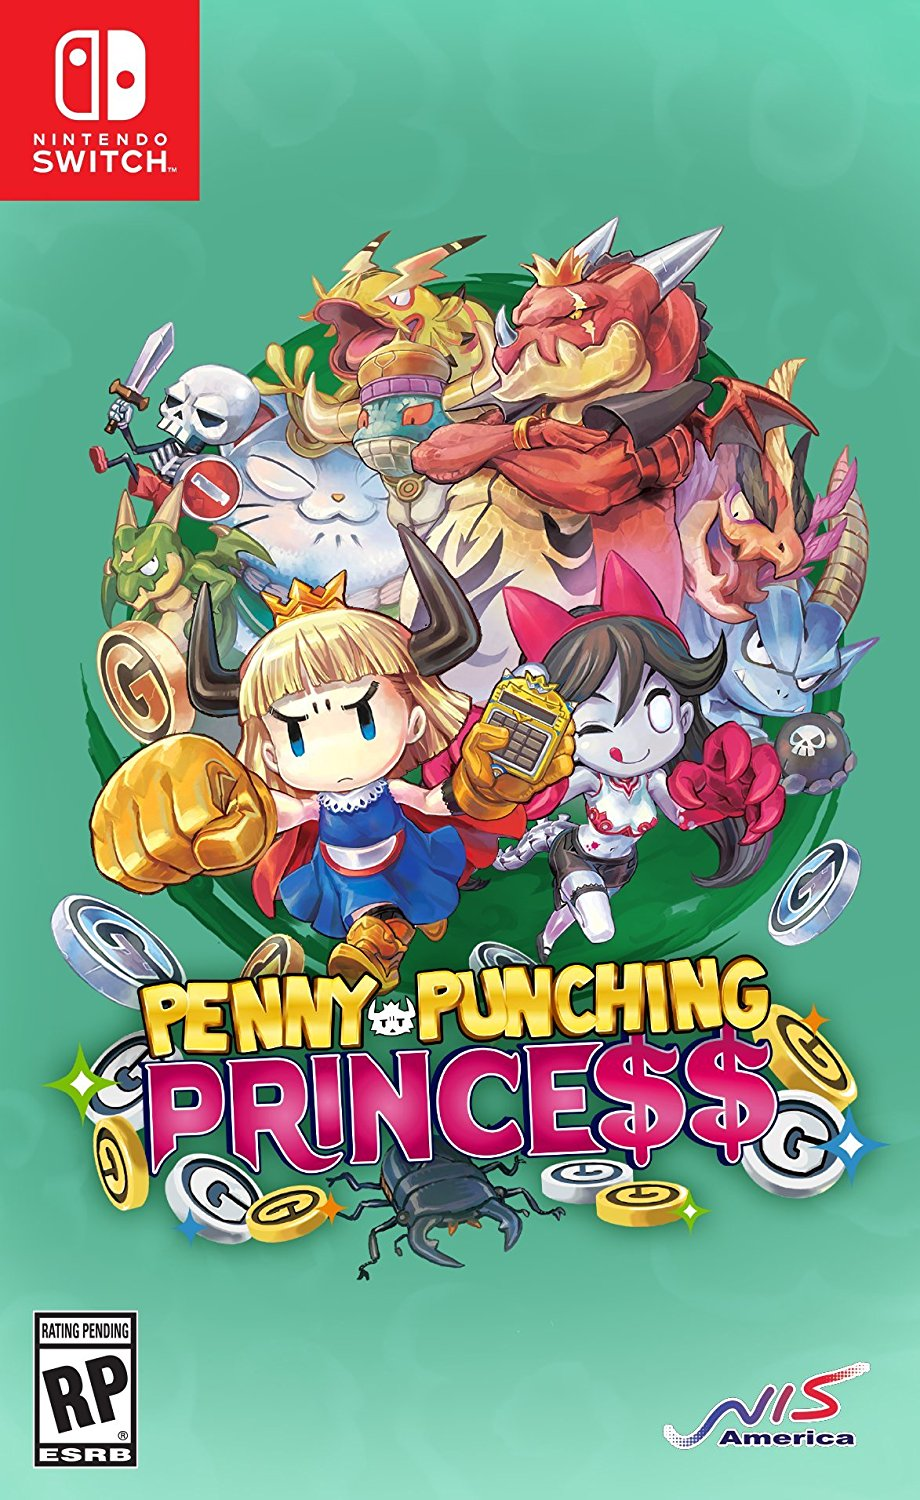 Nintendo Switch: mostrate le boxart di Penny-Punching ...